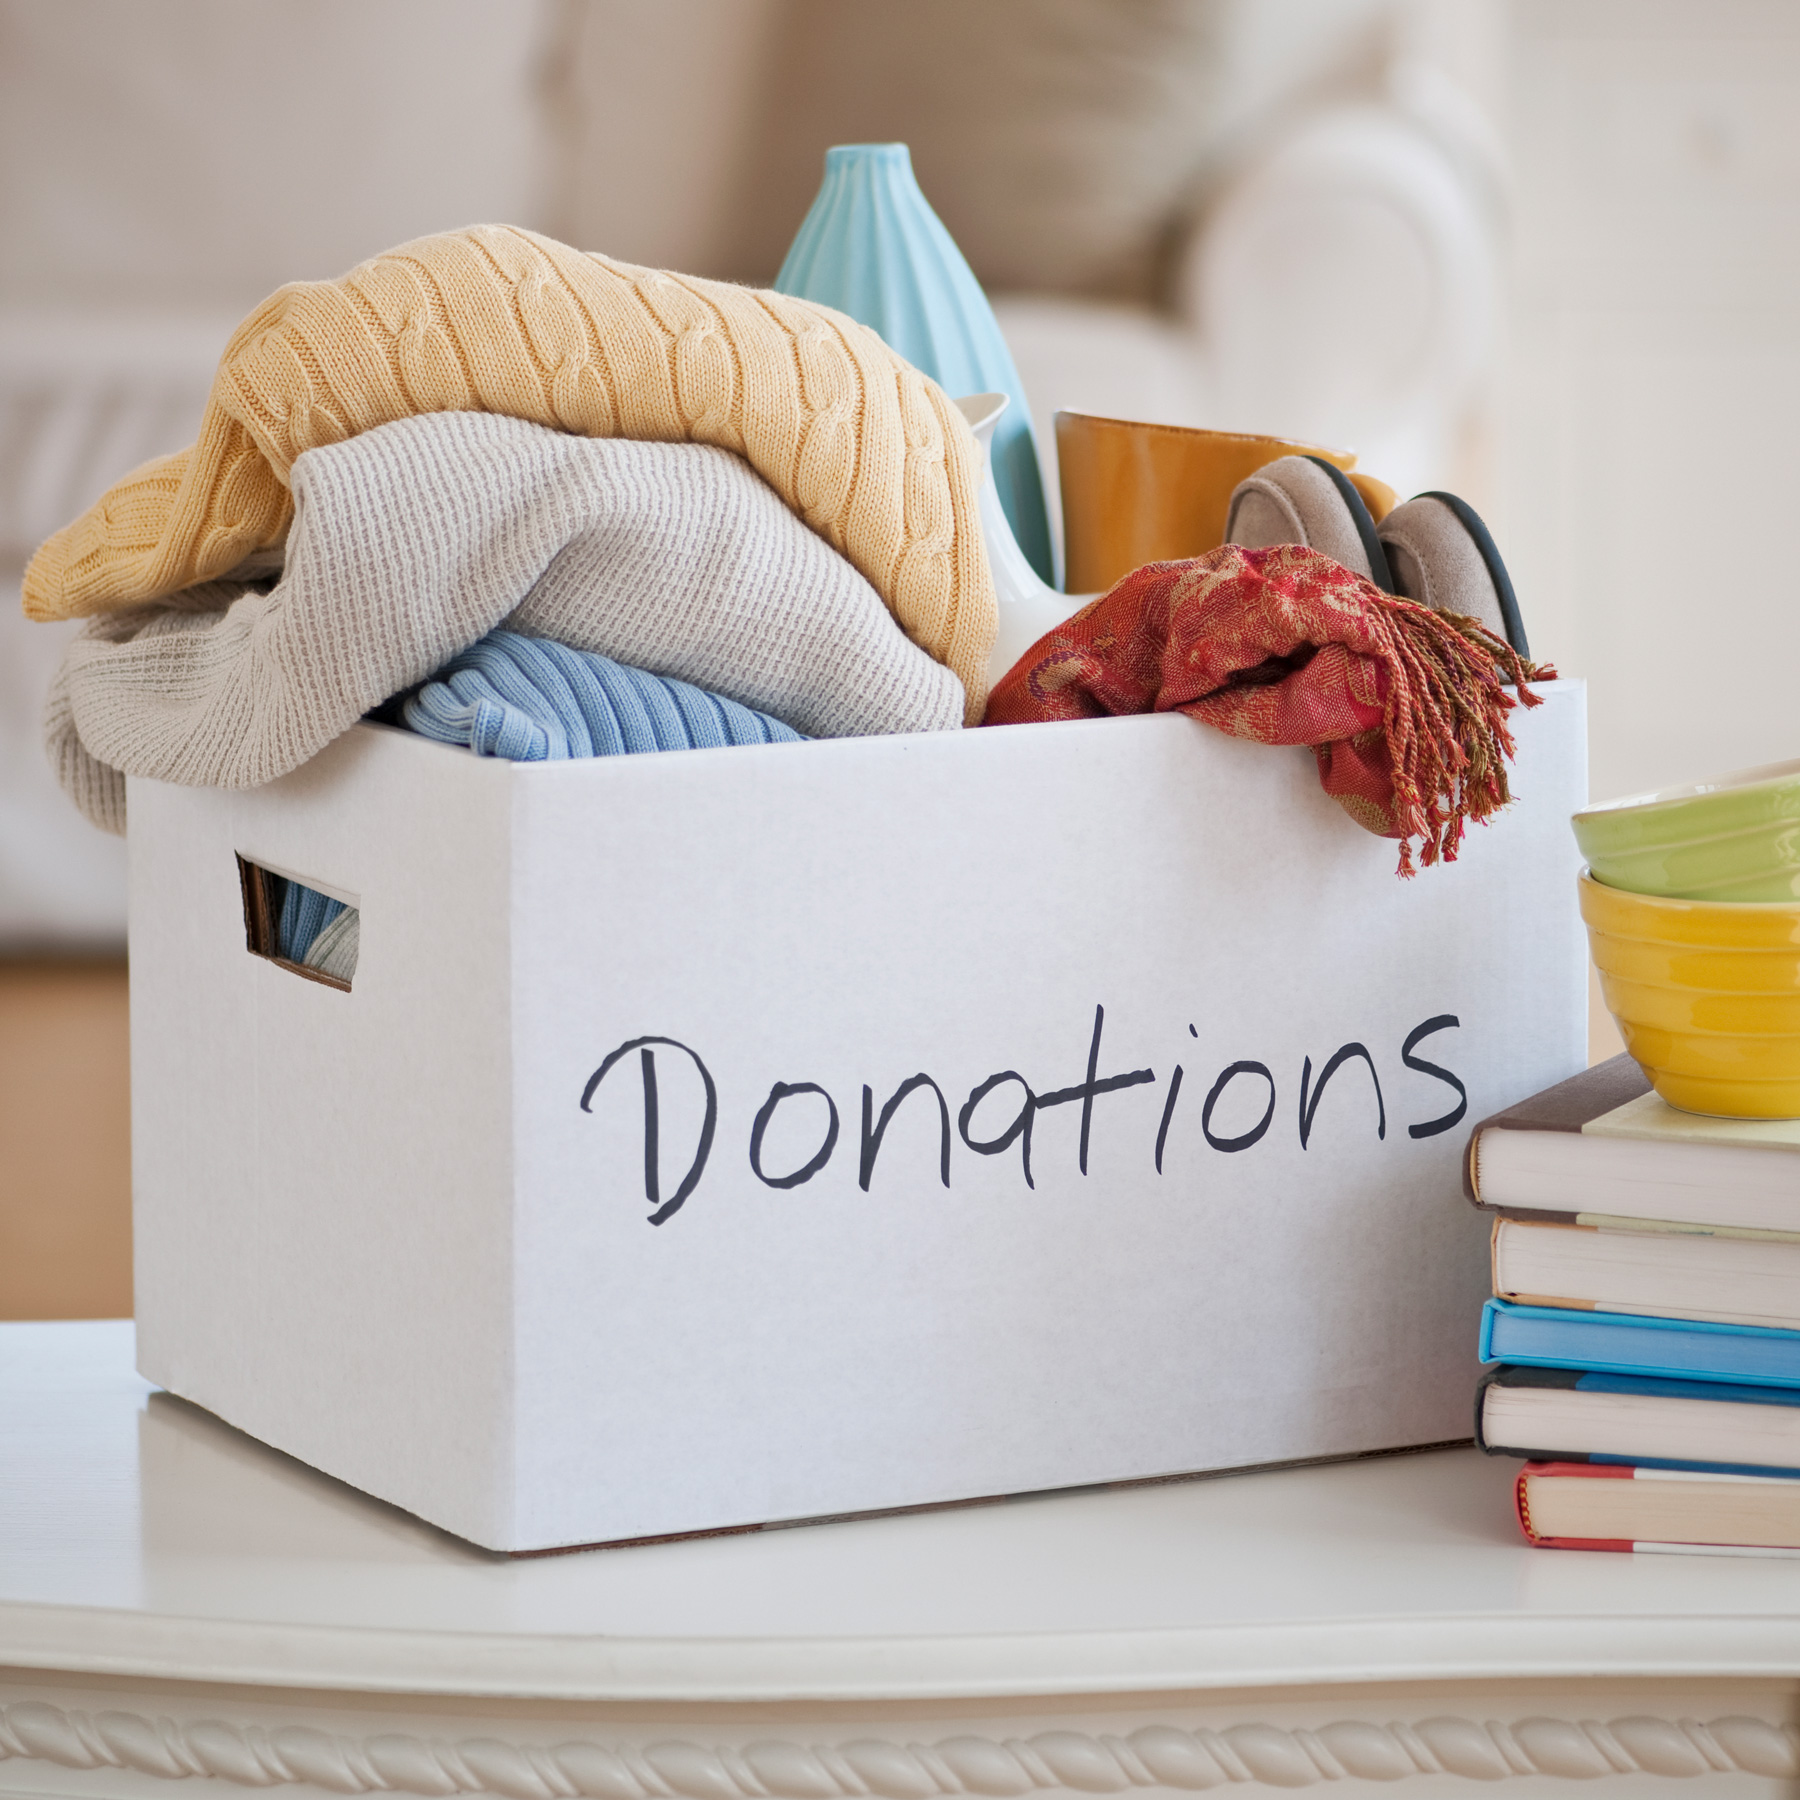 10 Ways to Make Your Home Greener: box of clothing donations